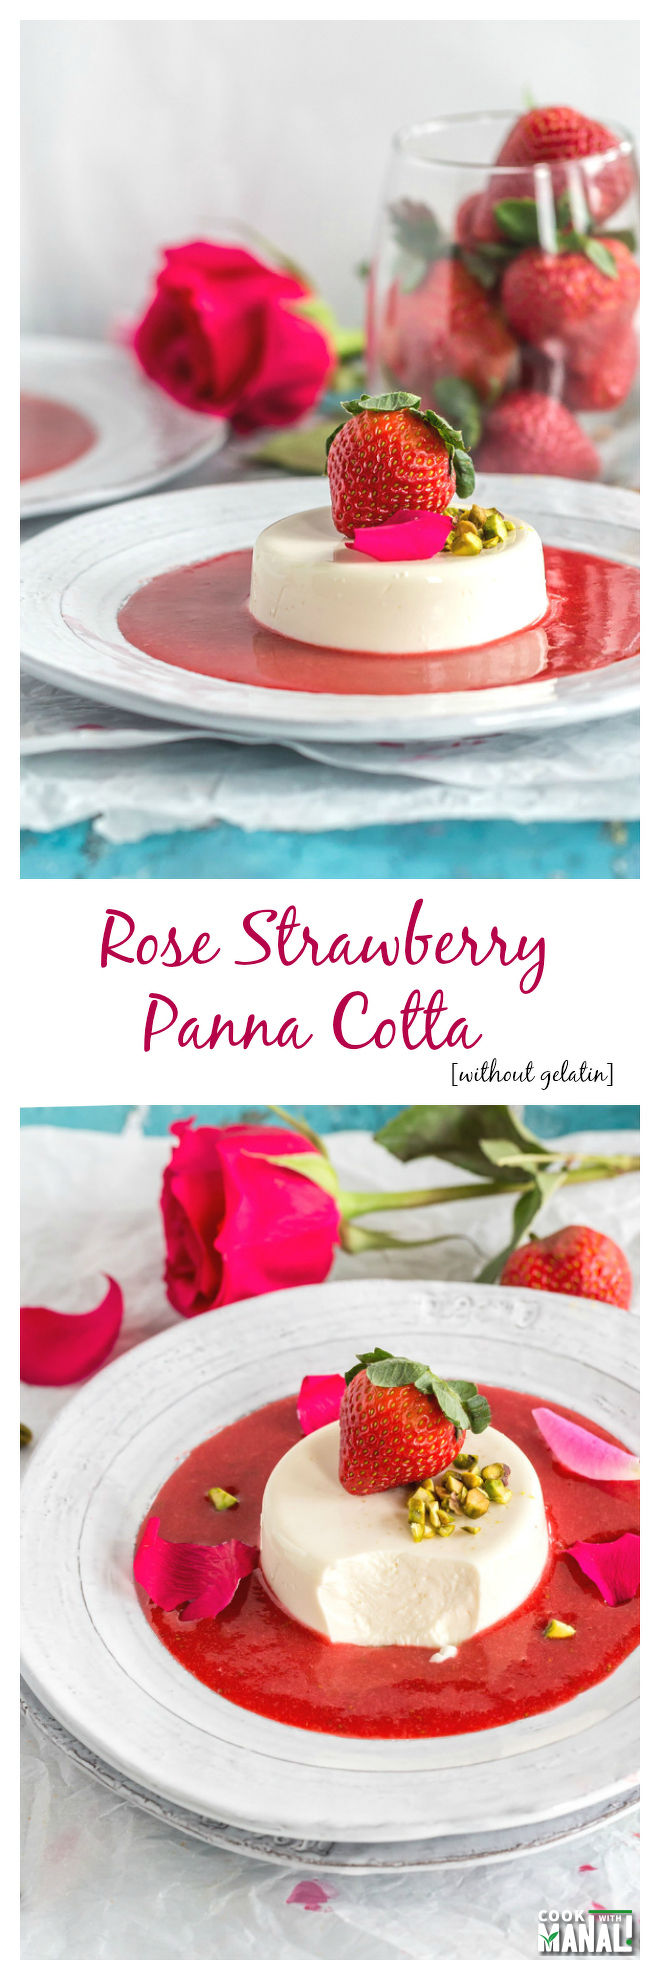 Rose Strawberry Panna Cotta Without Gelatin Collage